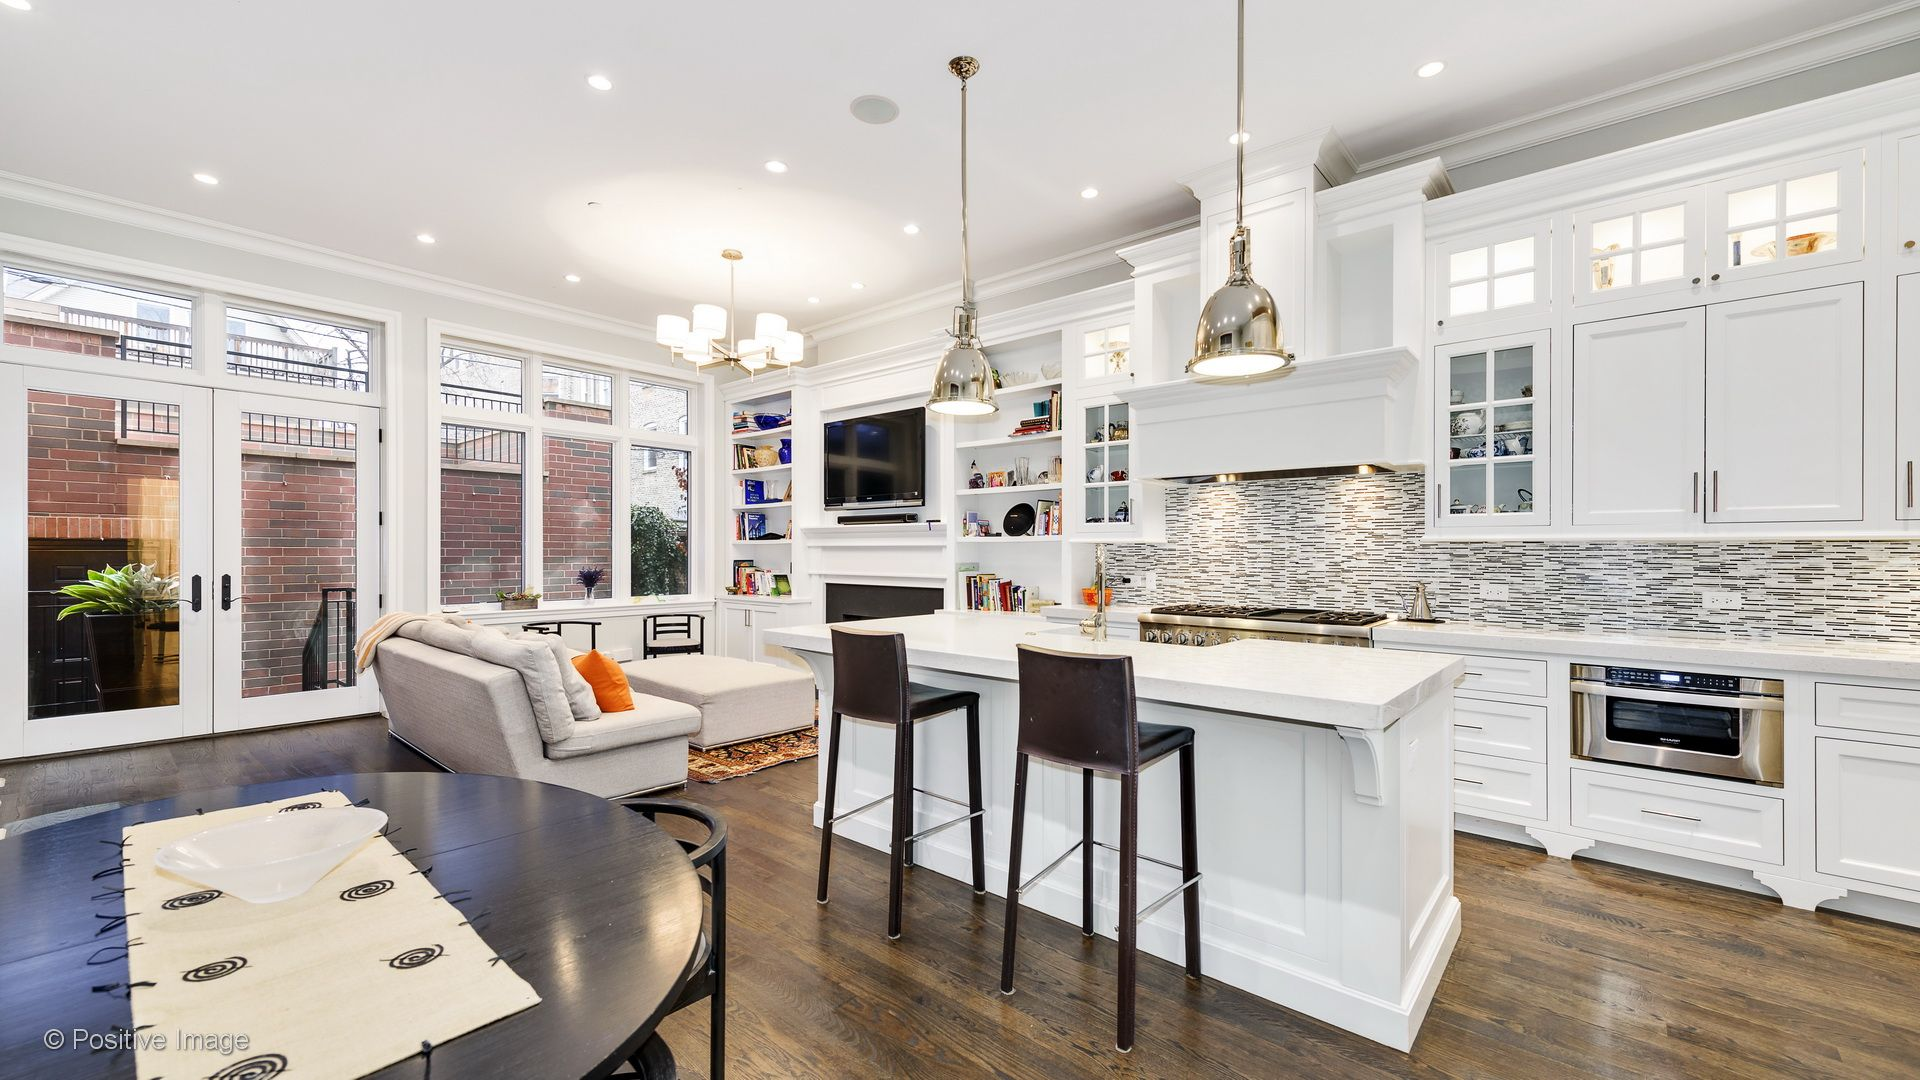 Modern Open Concept Kitchen And Living Area With Hardwood Floors Pendant Lighting Recessed Dark Wood Dining Chair Apartments For Rent Round Wood Dining Table